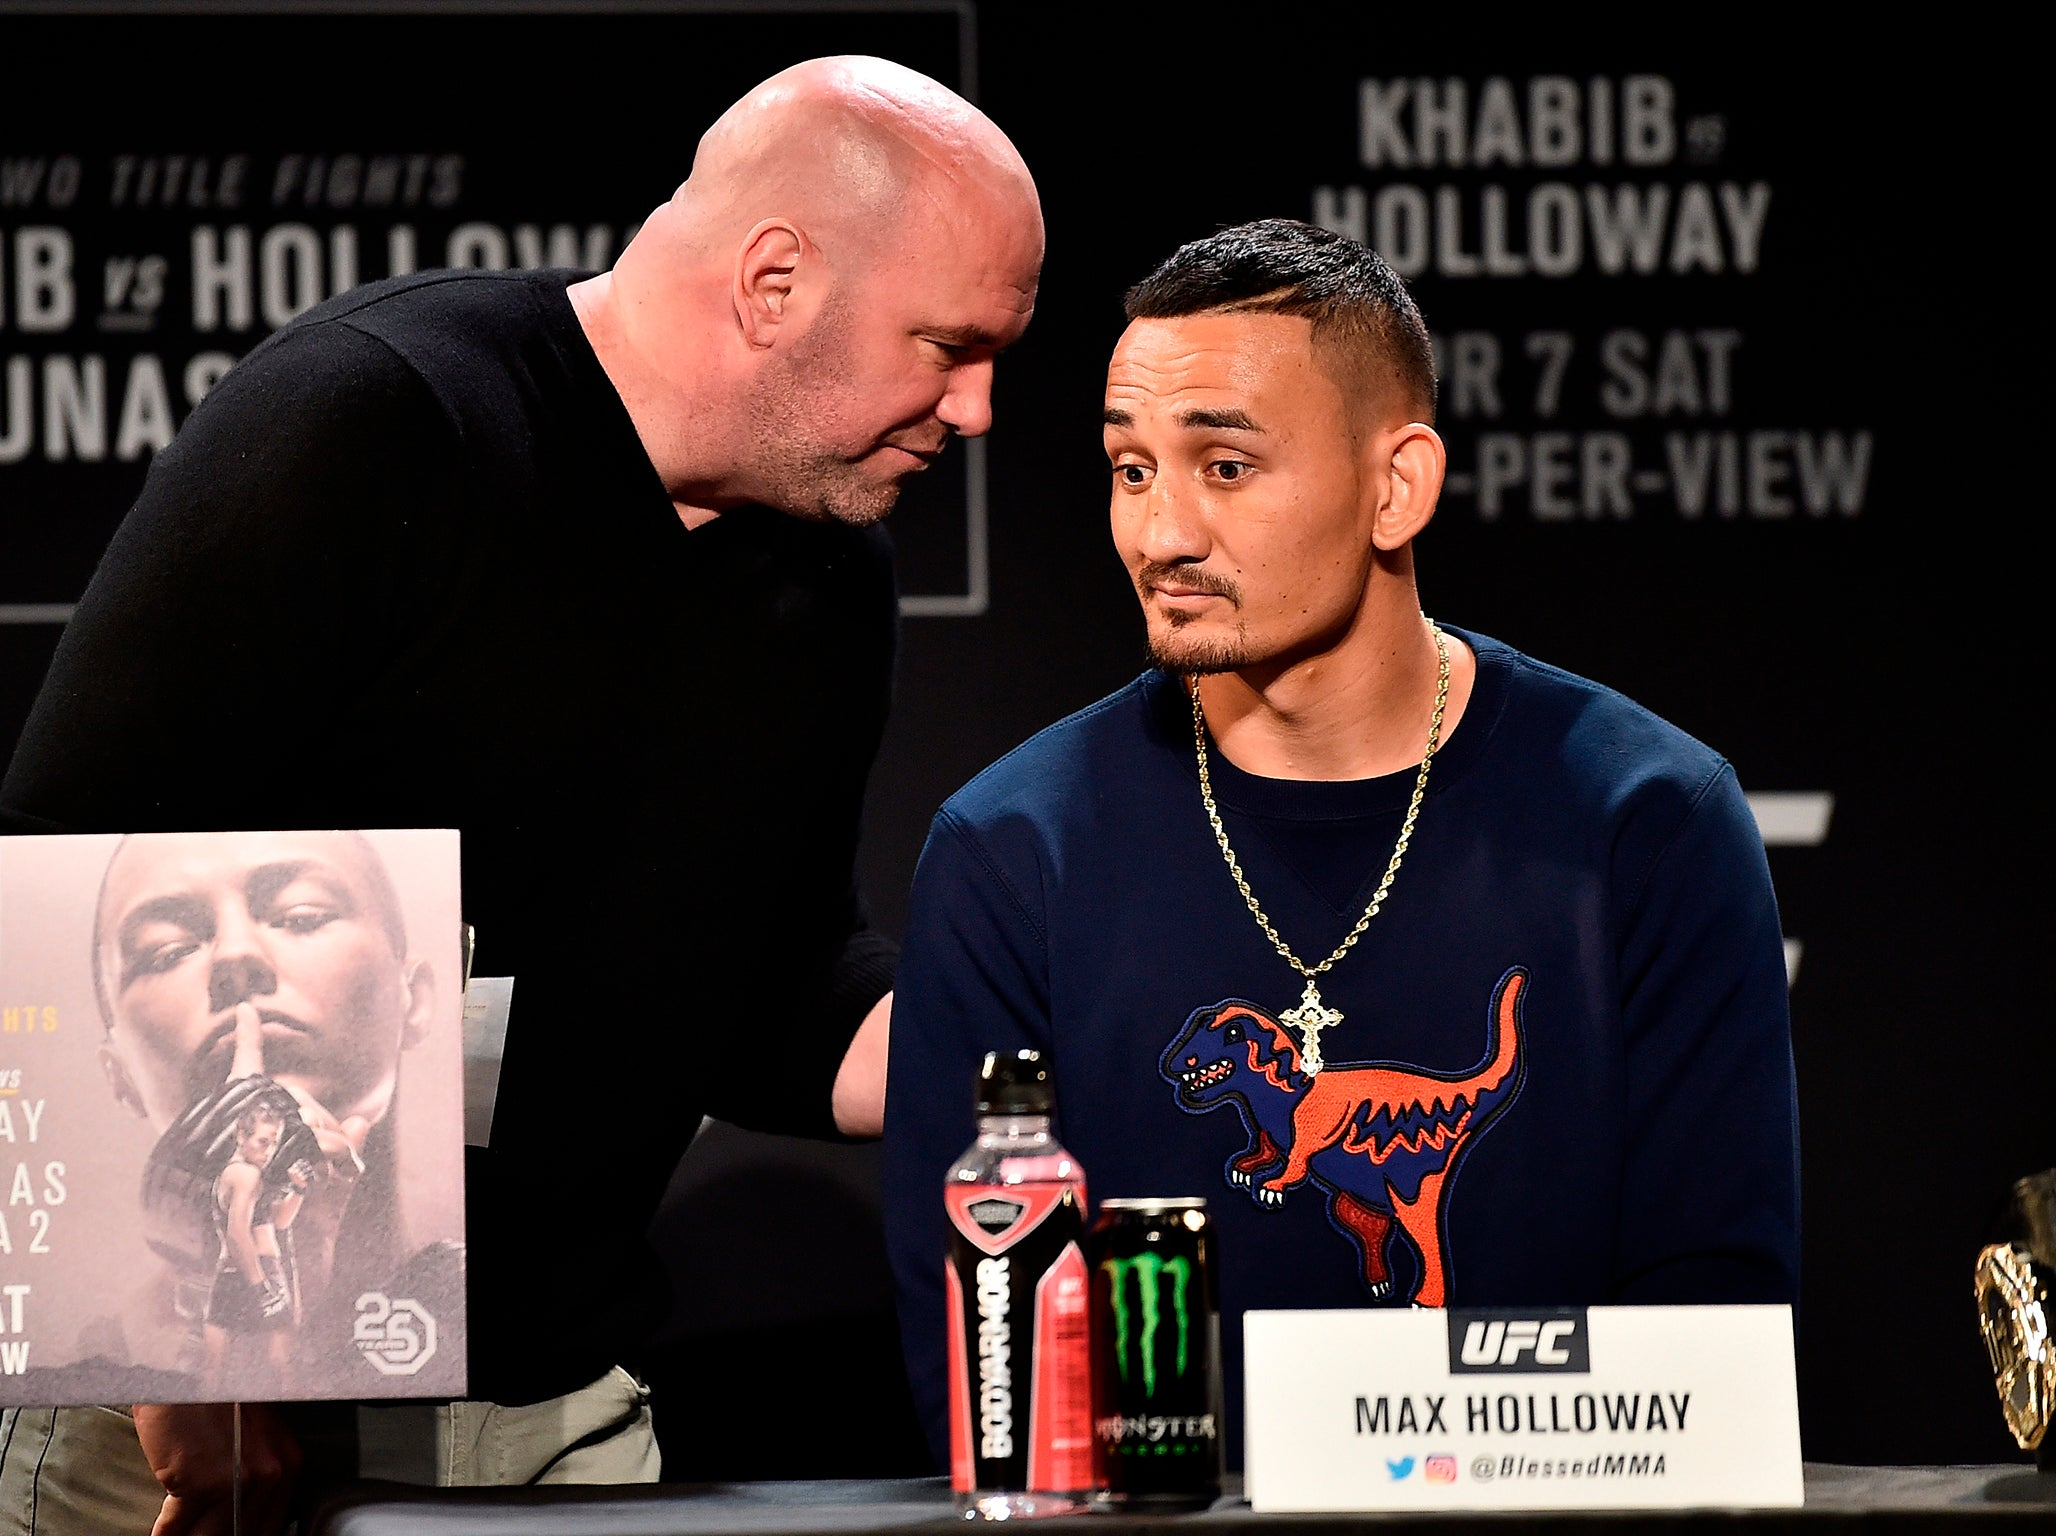 Max Holloway Unfit To Fight Khabib Nurmagomedov At Ufc 223 With Card In Tatters After Conor Mcgregor Bus Attack The Independent The Independent